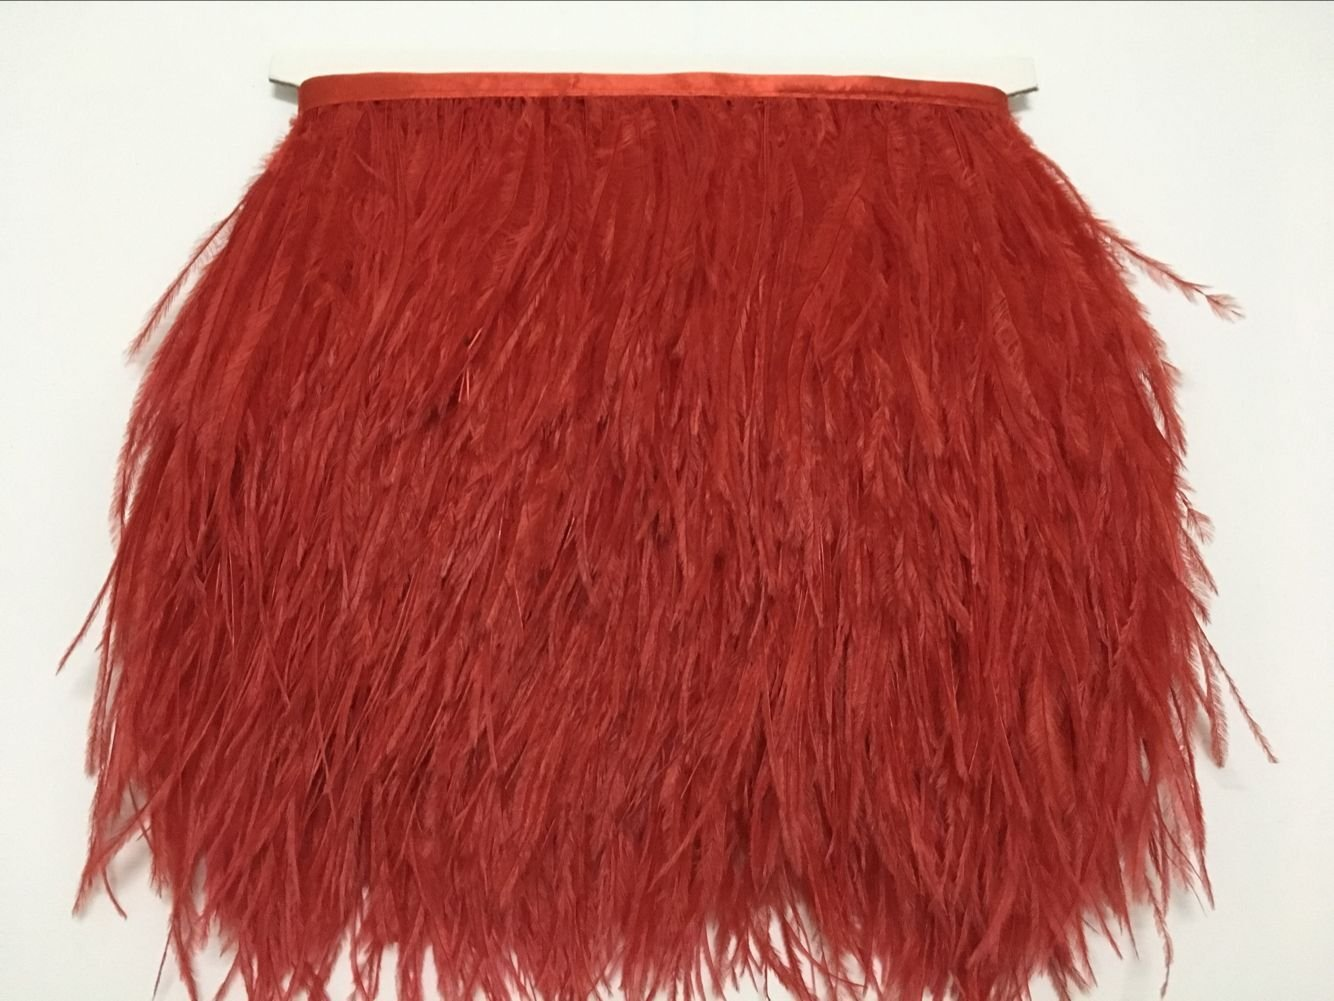 MELADY 5 Yards Fashion Dress Sewing Crafts Costumes Decoration Ostrich Feathers Trims Fringe with Satin Ribbon Tape Pink